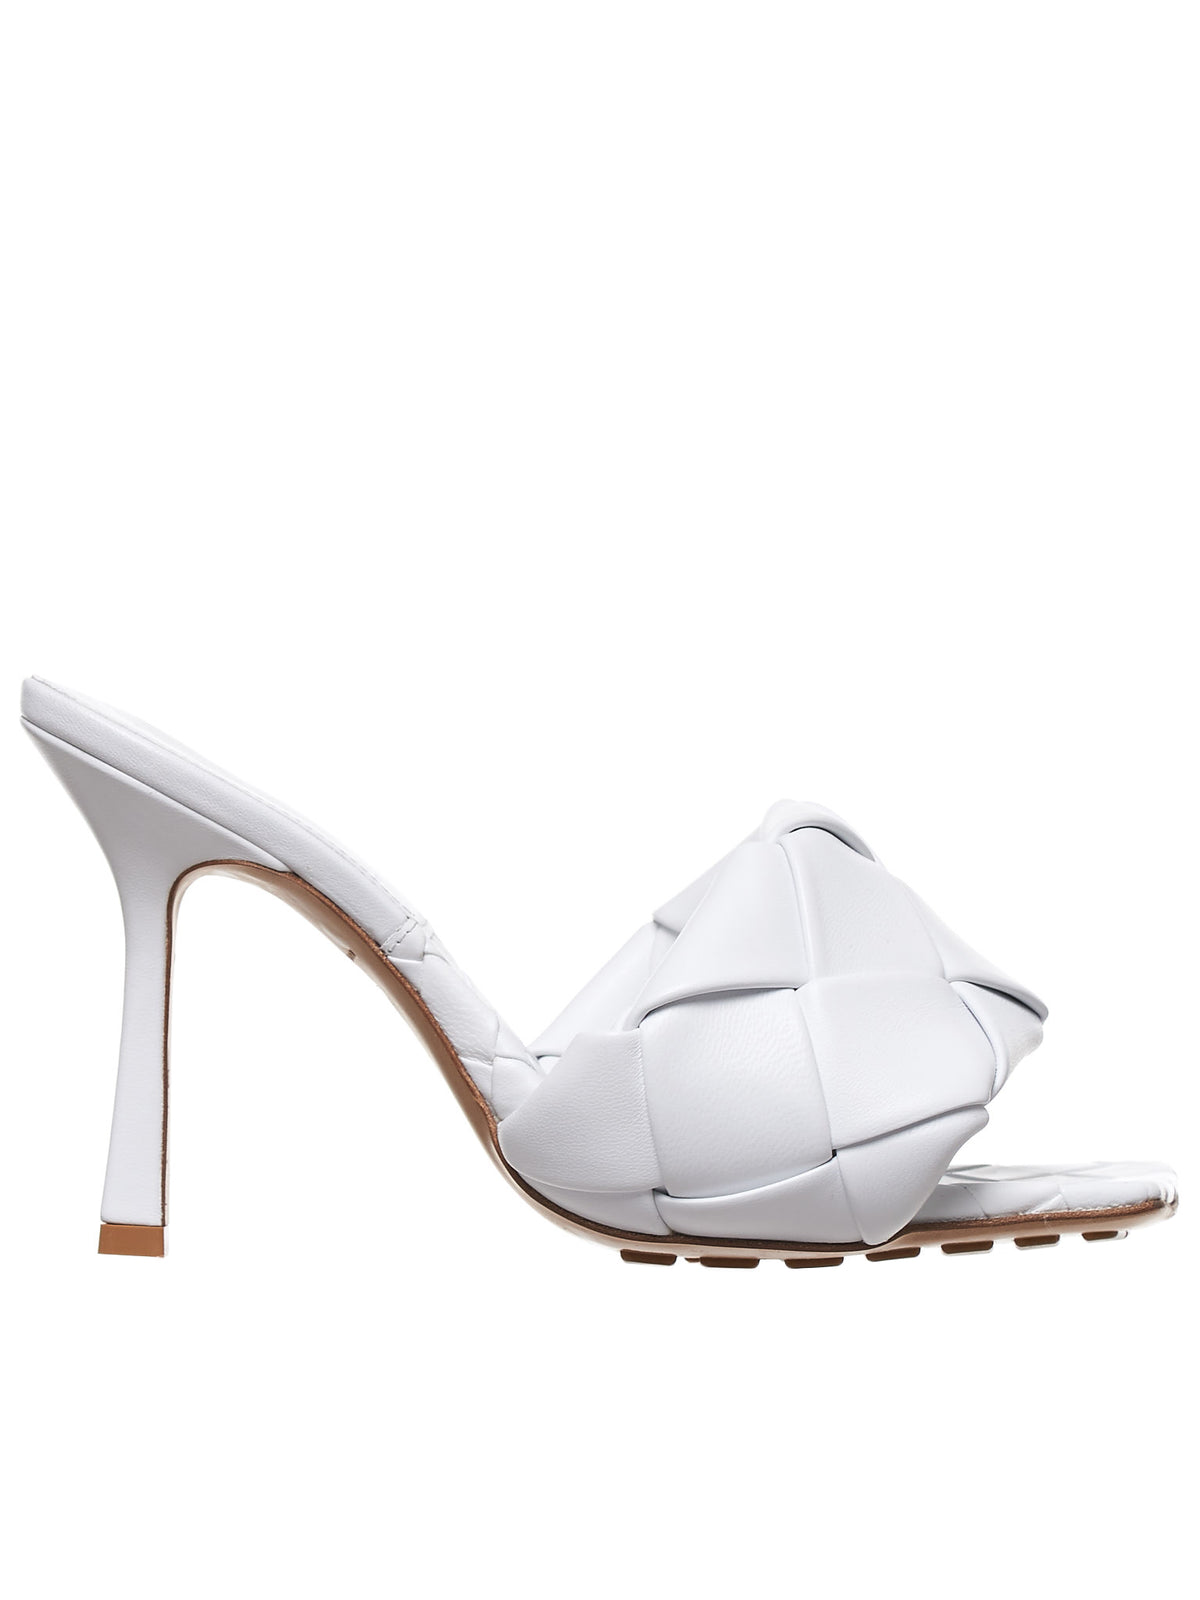 Maxi Intrecciato Sandal Heel (608854VBSS0-9122-OPTIC-WHITE)